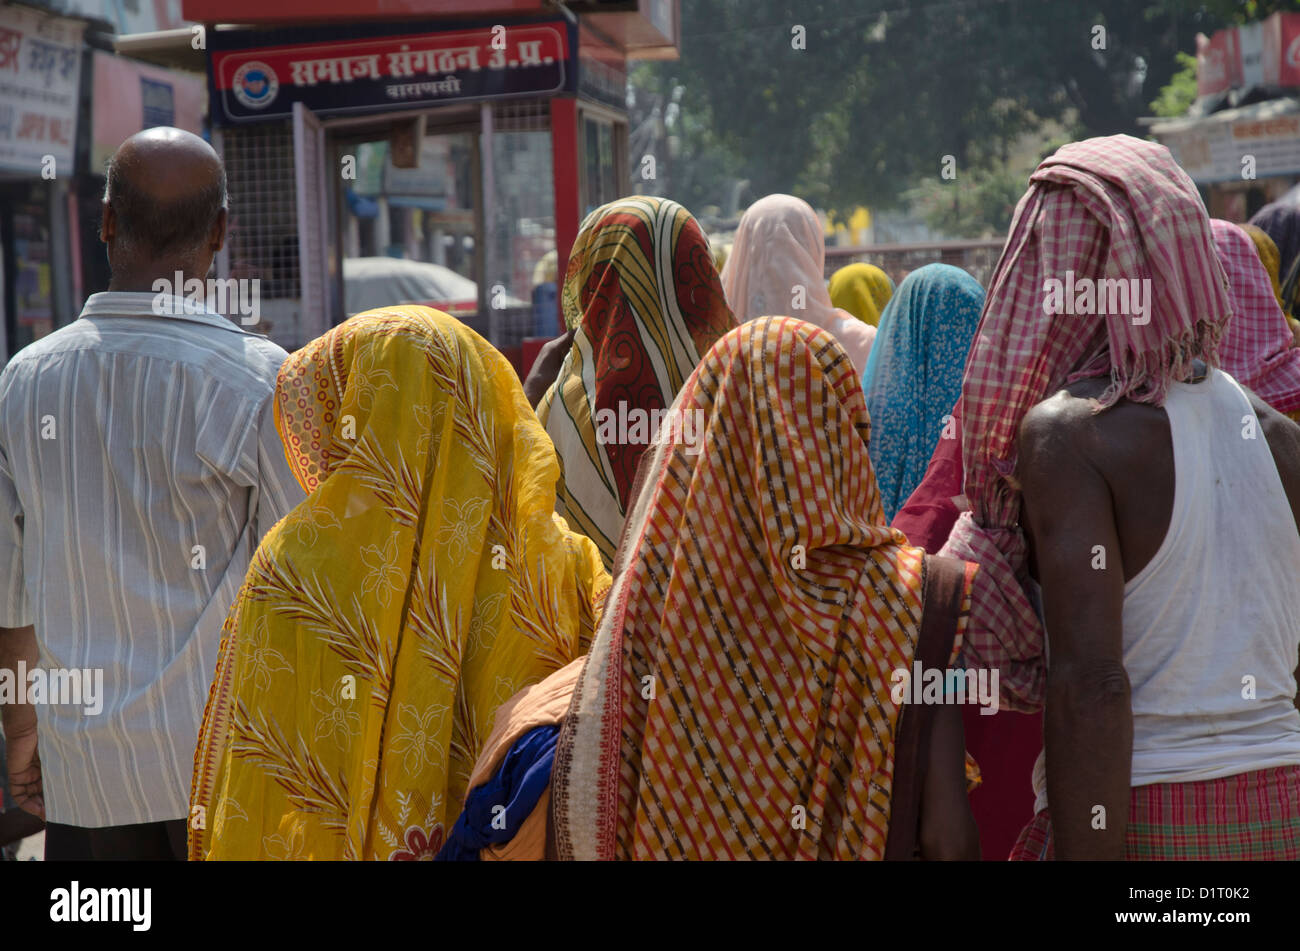 Colorful clothed people in Udaipur, Rajastan, India - Stock Image